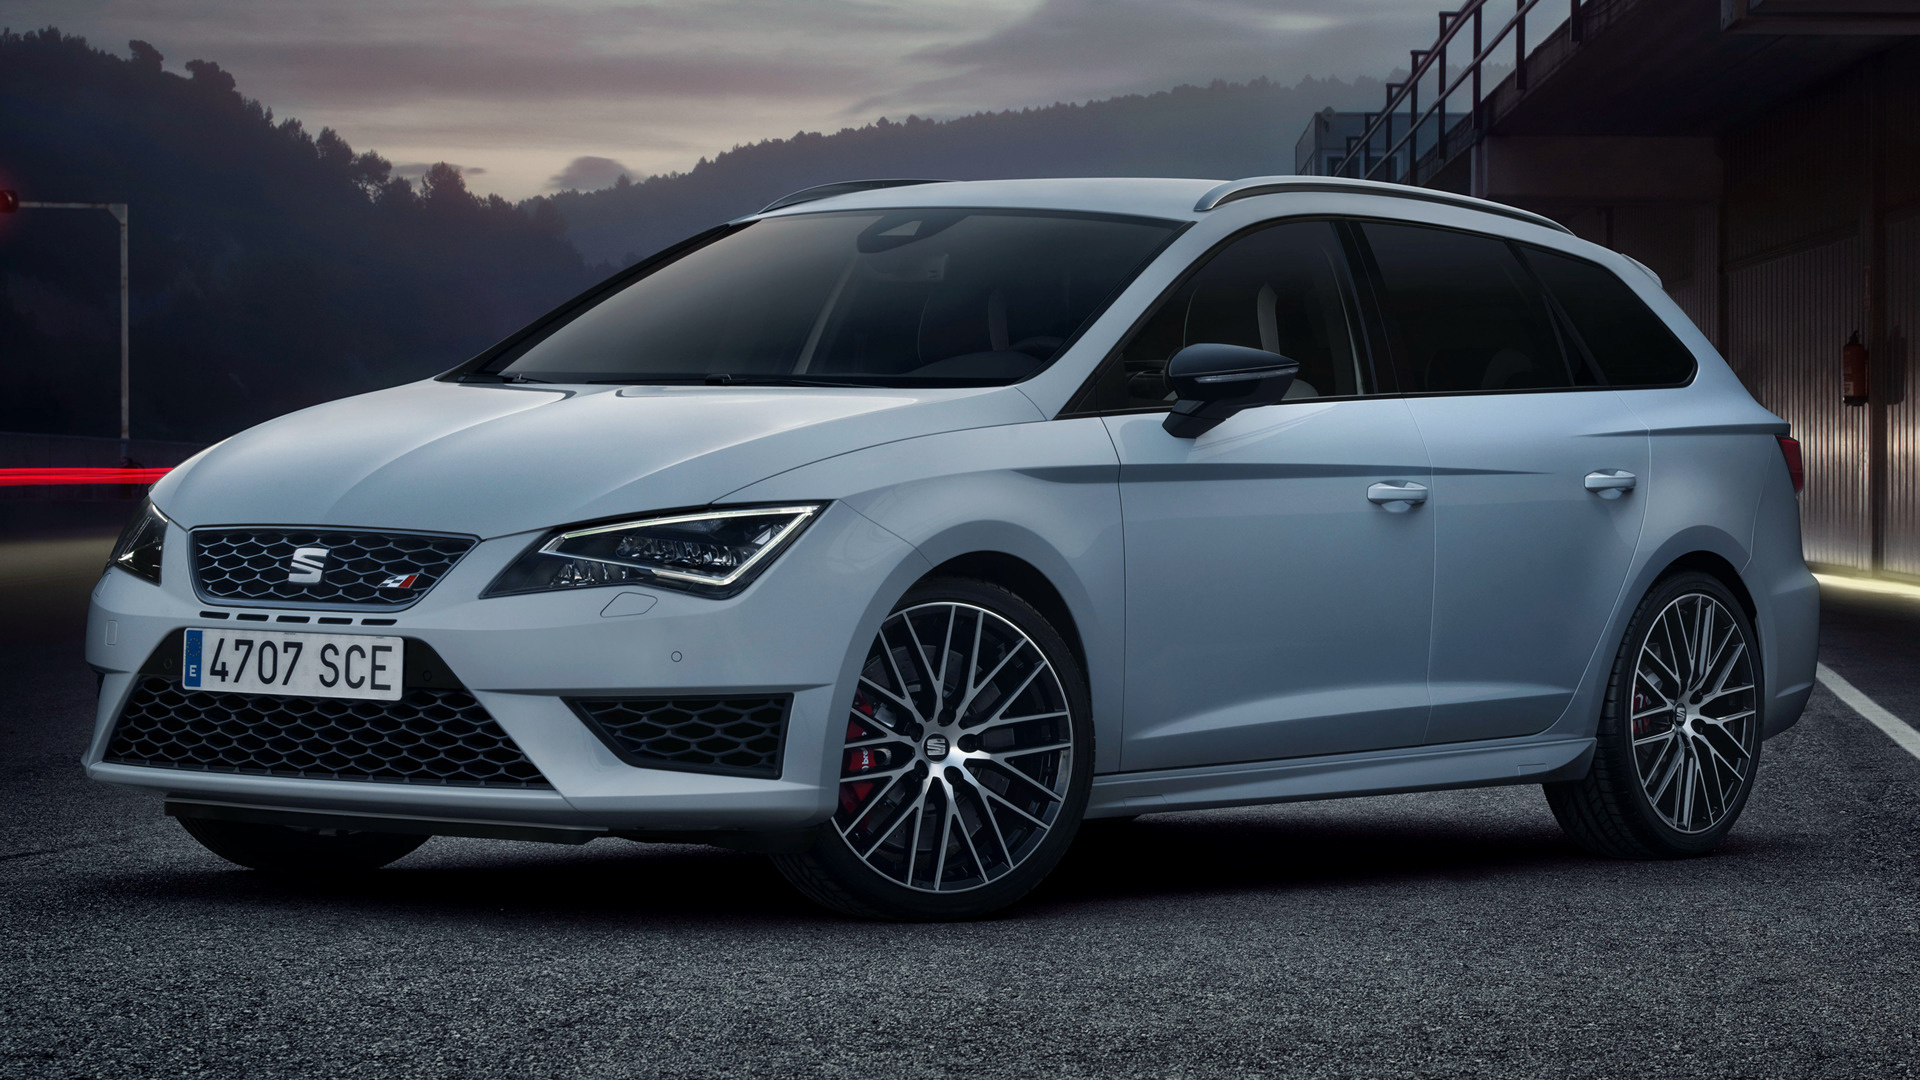 seat leon st cupra 280 2015 wallpapers and hd images car pixel. Black Bedroom Furniture Sets. Home Design Ideas